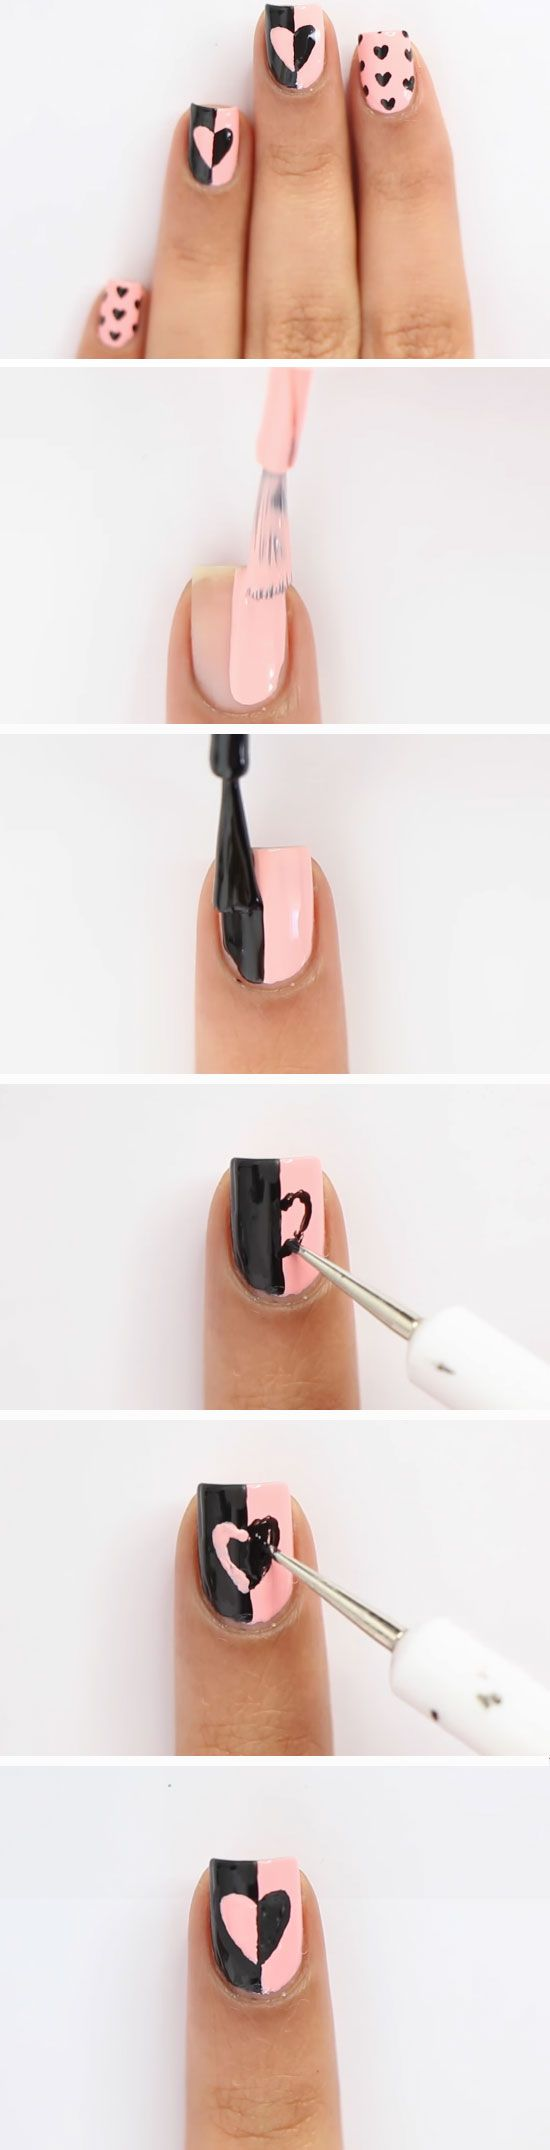 Queen of Hearts   15 Easy Valentines Day Nail Designs for Short ...